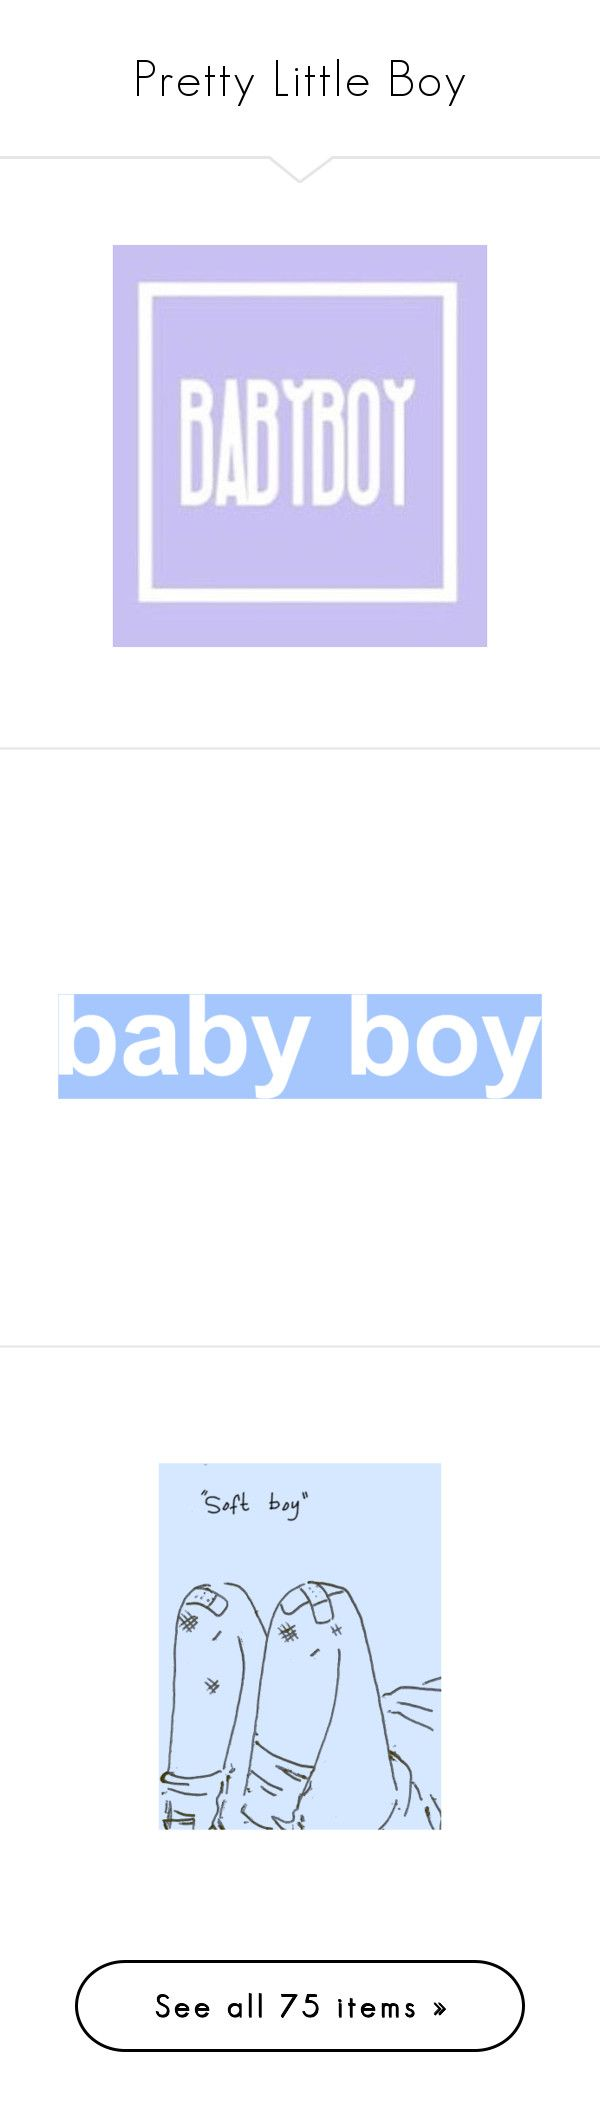 "pretty little boy""xx-pretty-boy-xx ❤ liked on polyvore featuri"